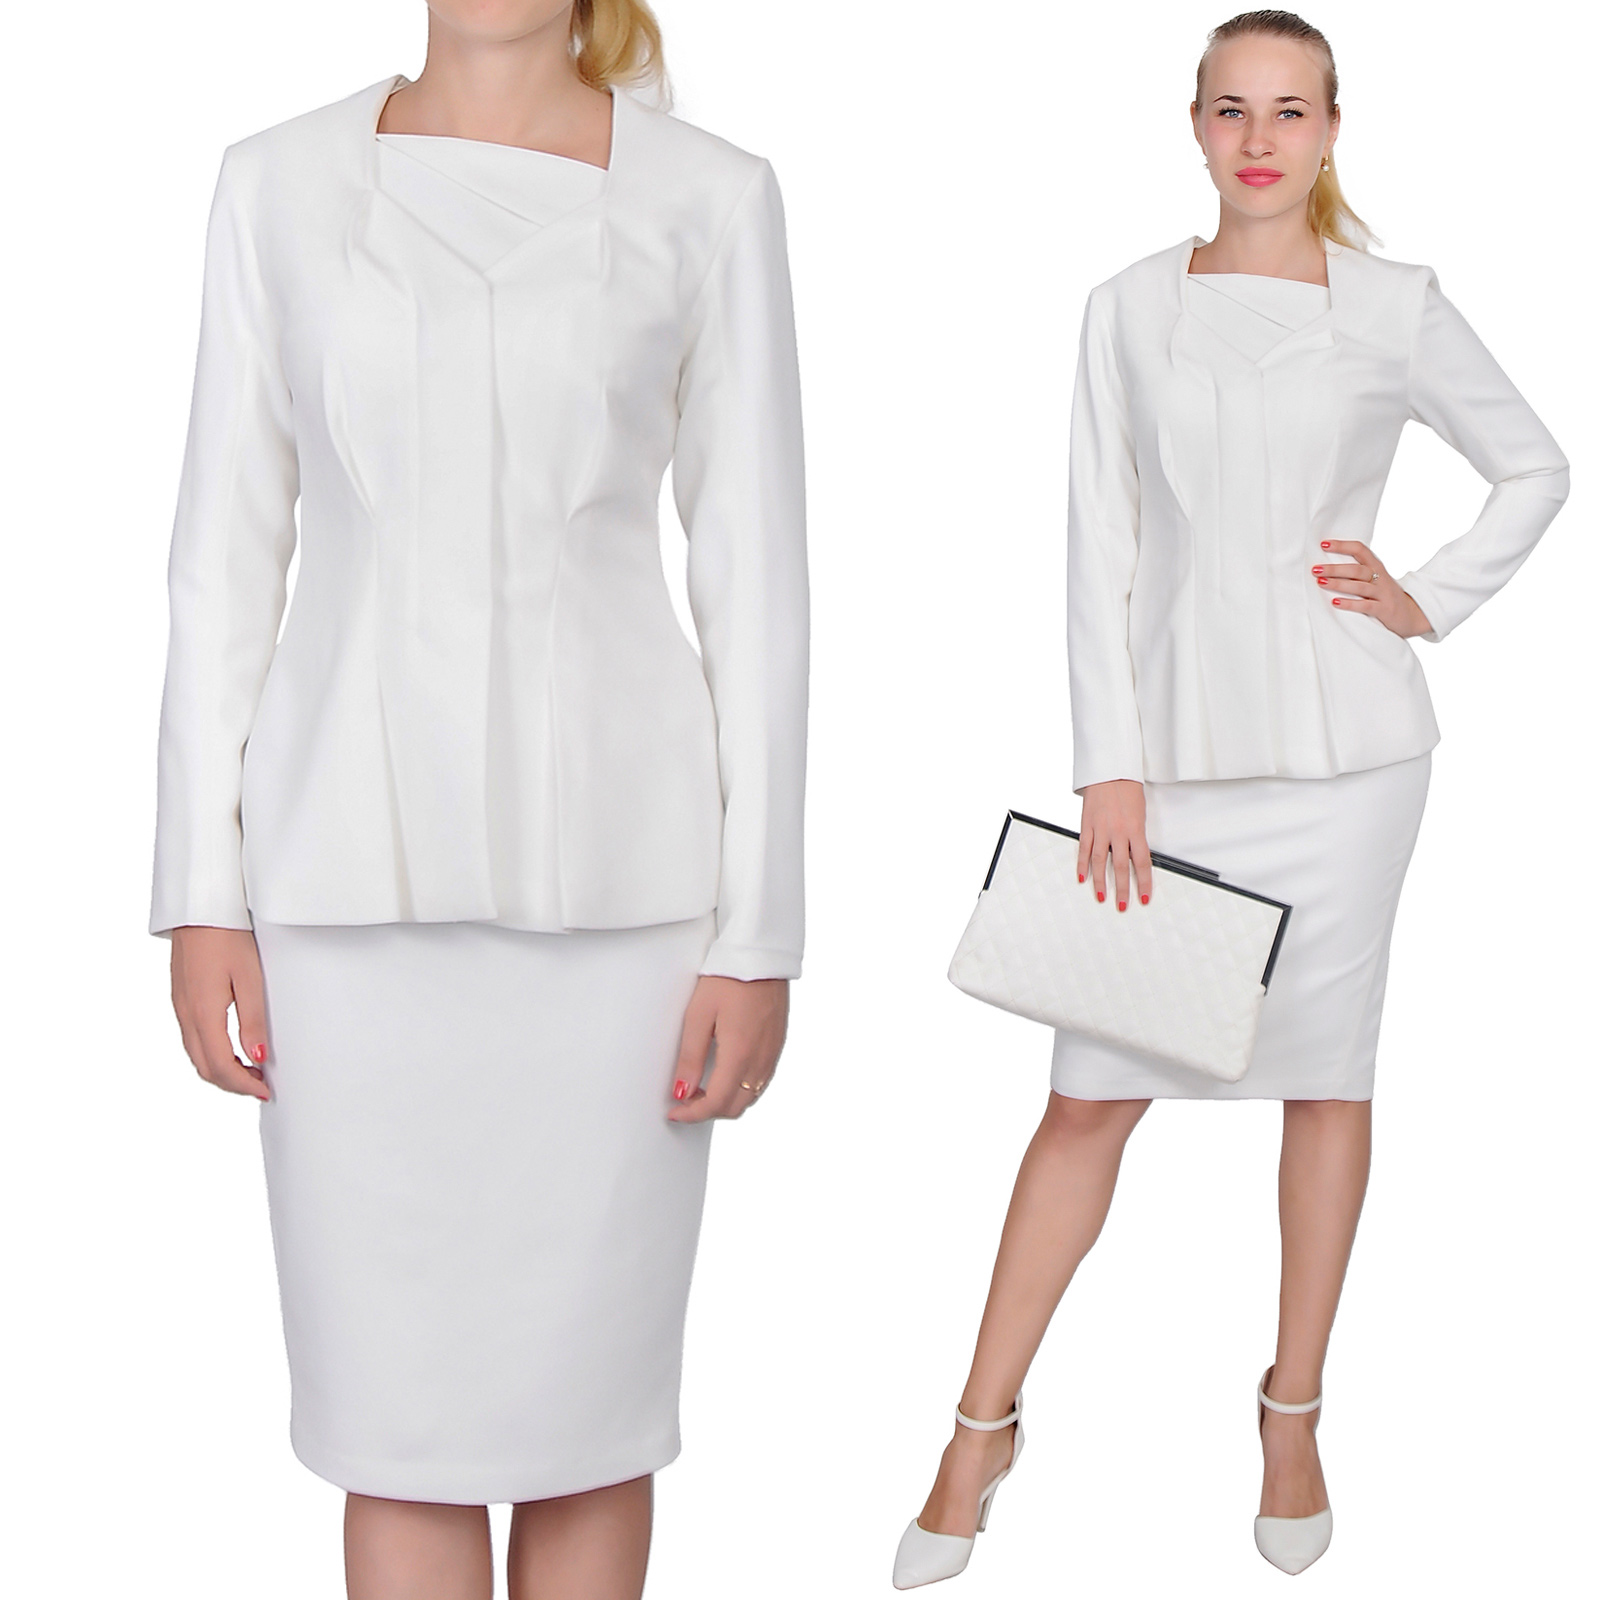 WOMENS WEAR TO WORK CLASSY ELEGANT LADY MIDI DRESS SUIT 4 CHURCH ...